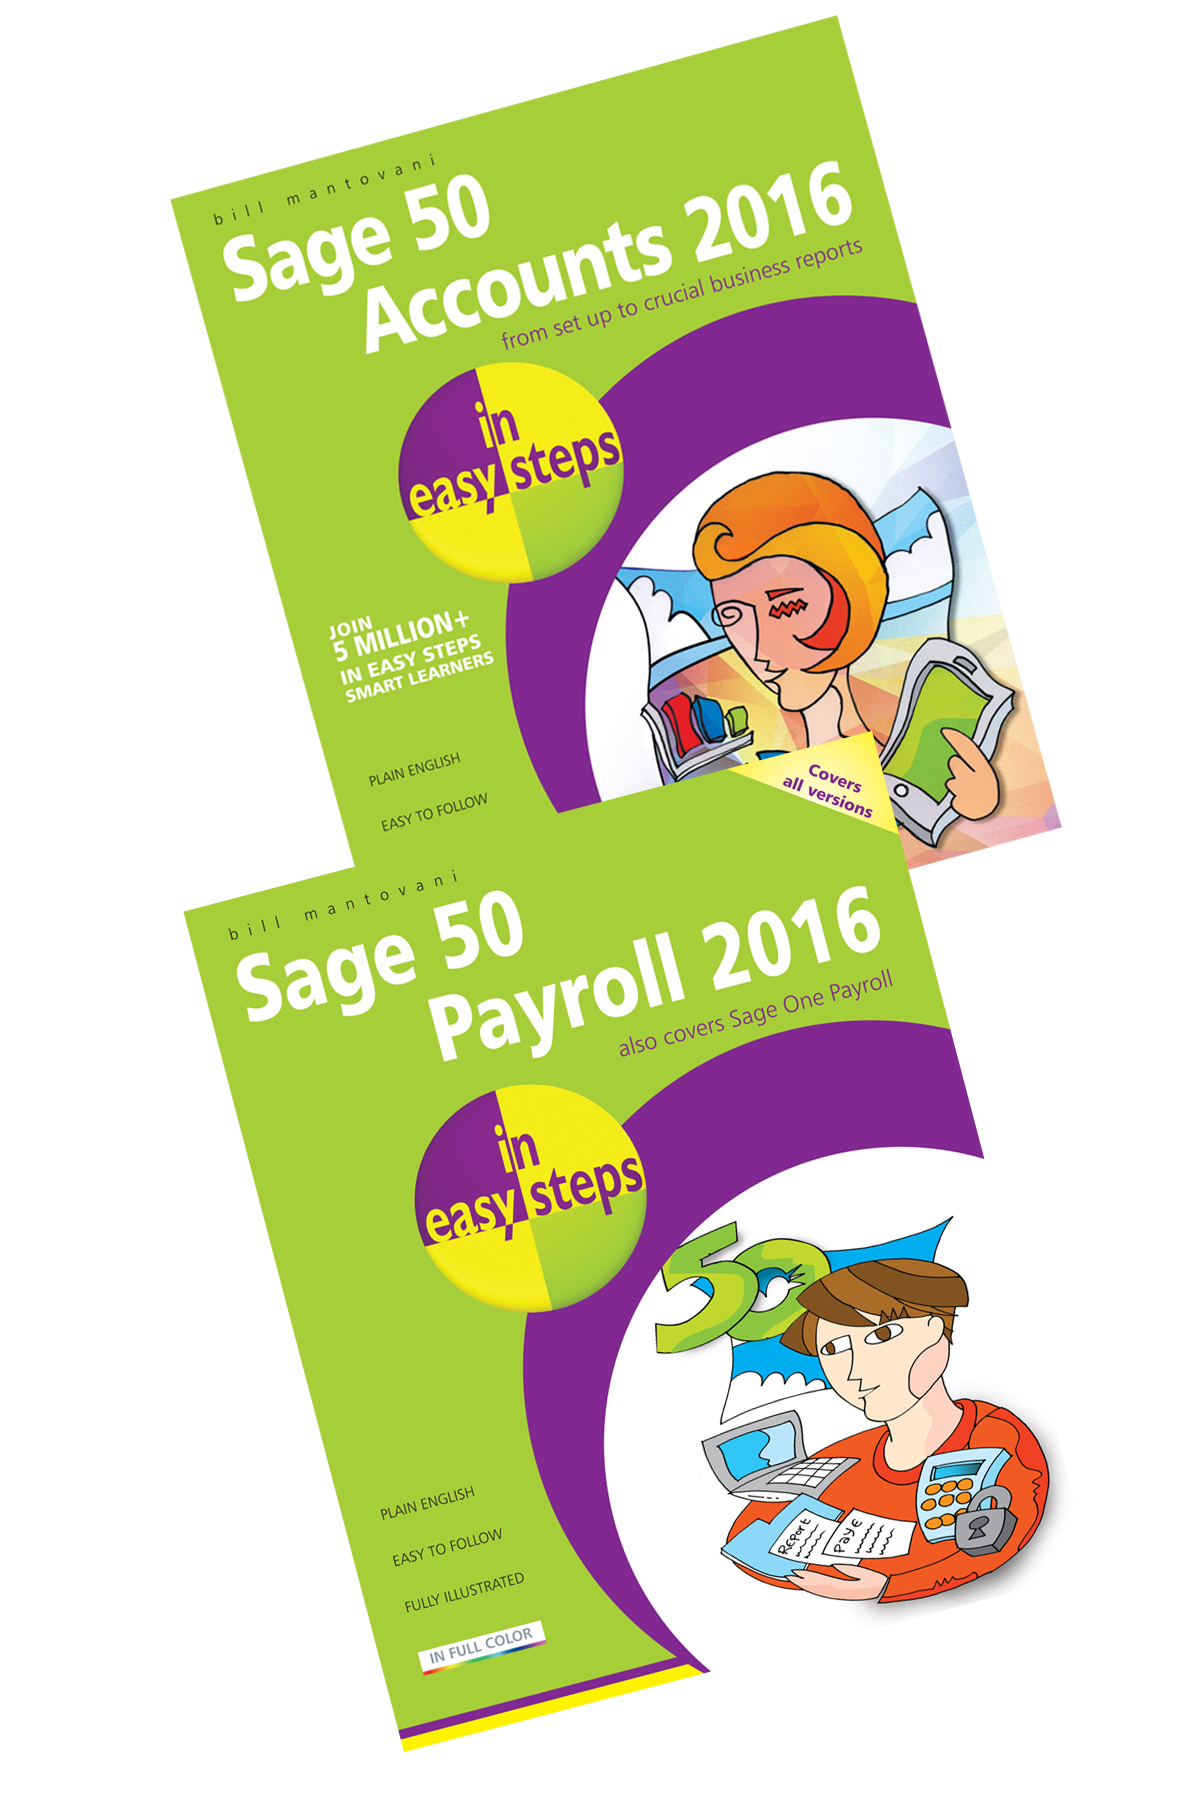 Sage Accounts Payroll 2016 in easy steps